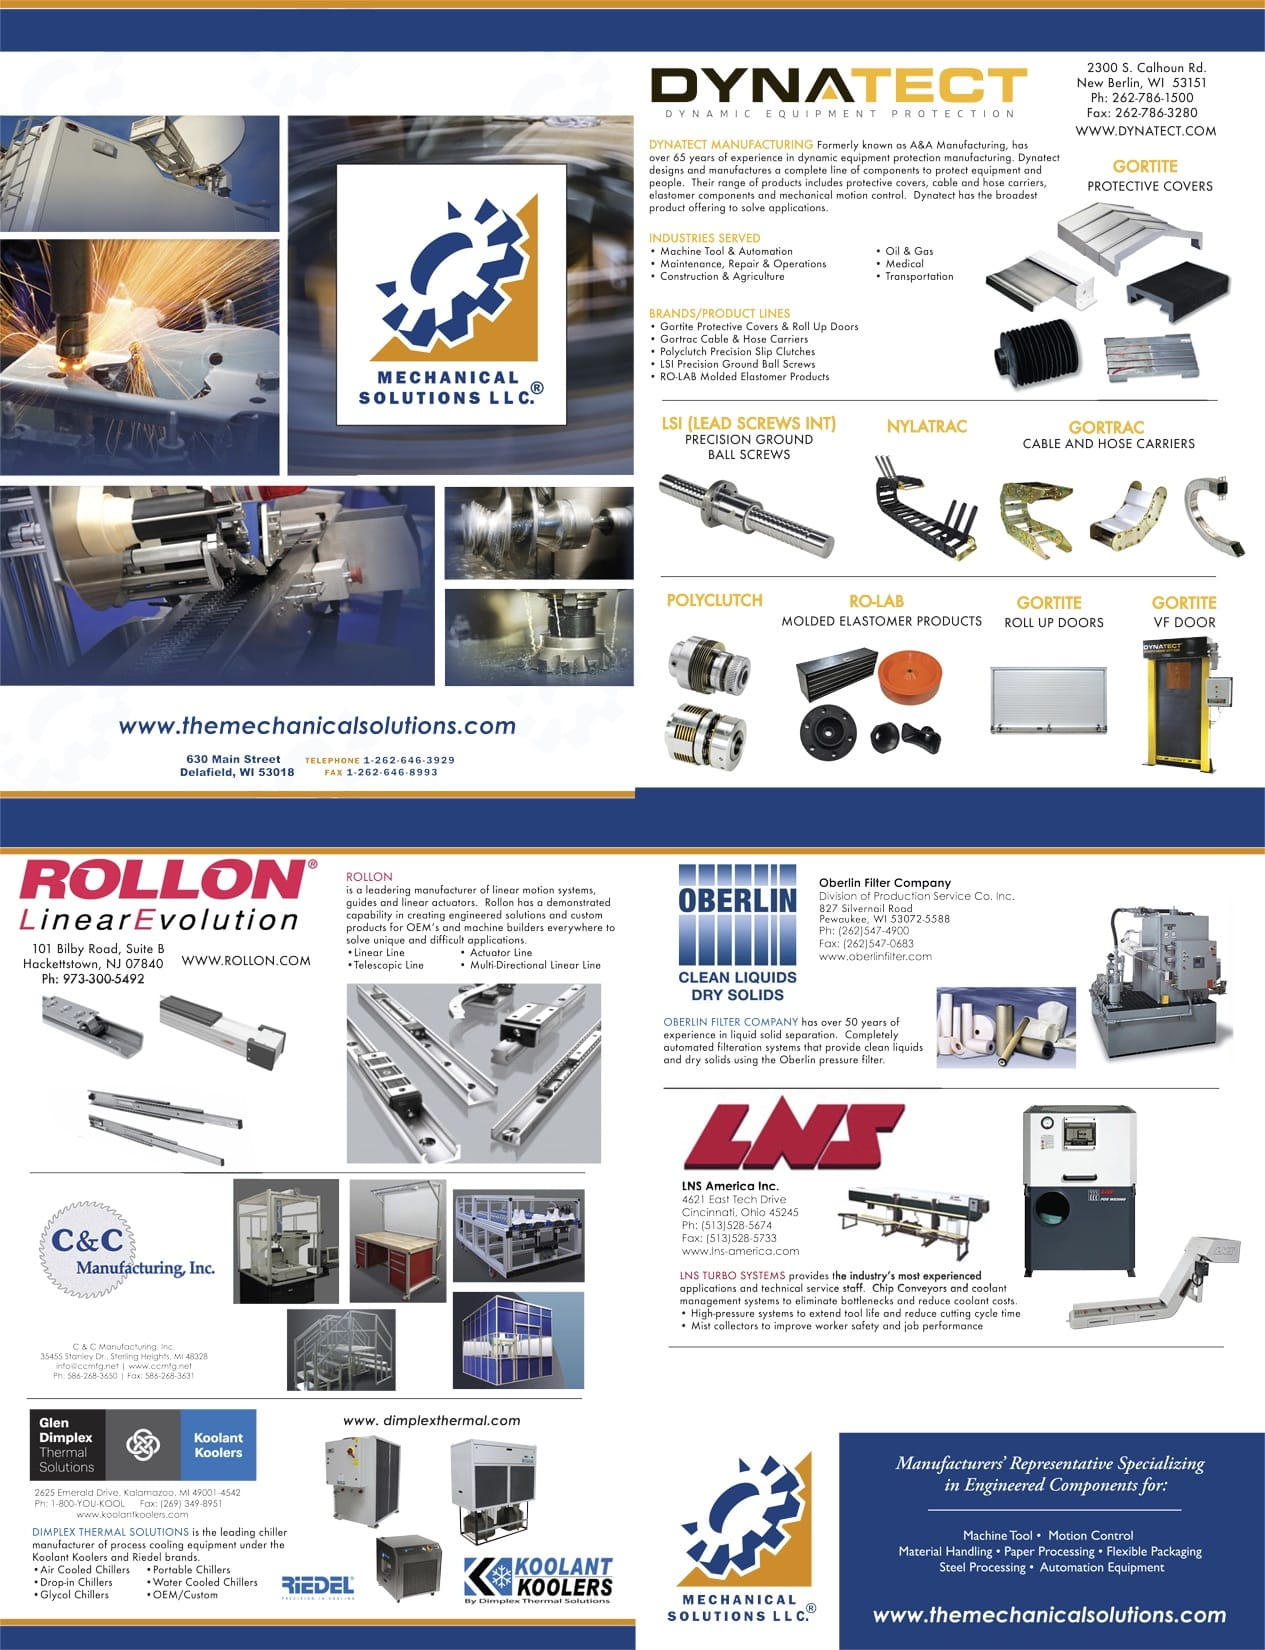 Mechanical Solutions line card